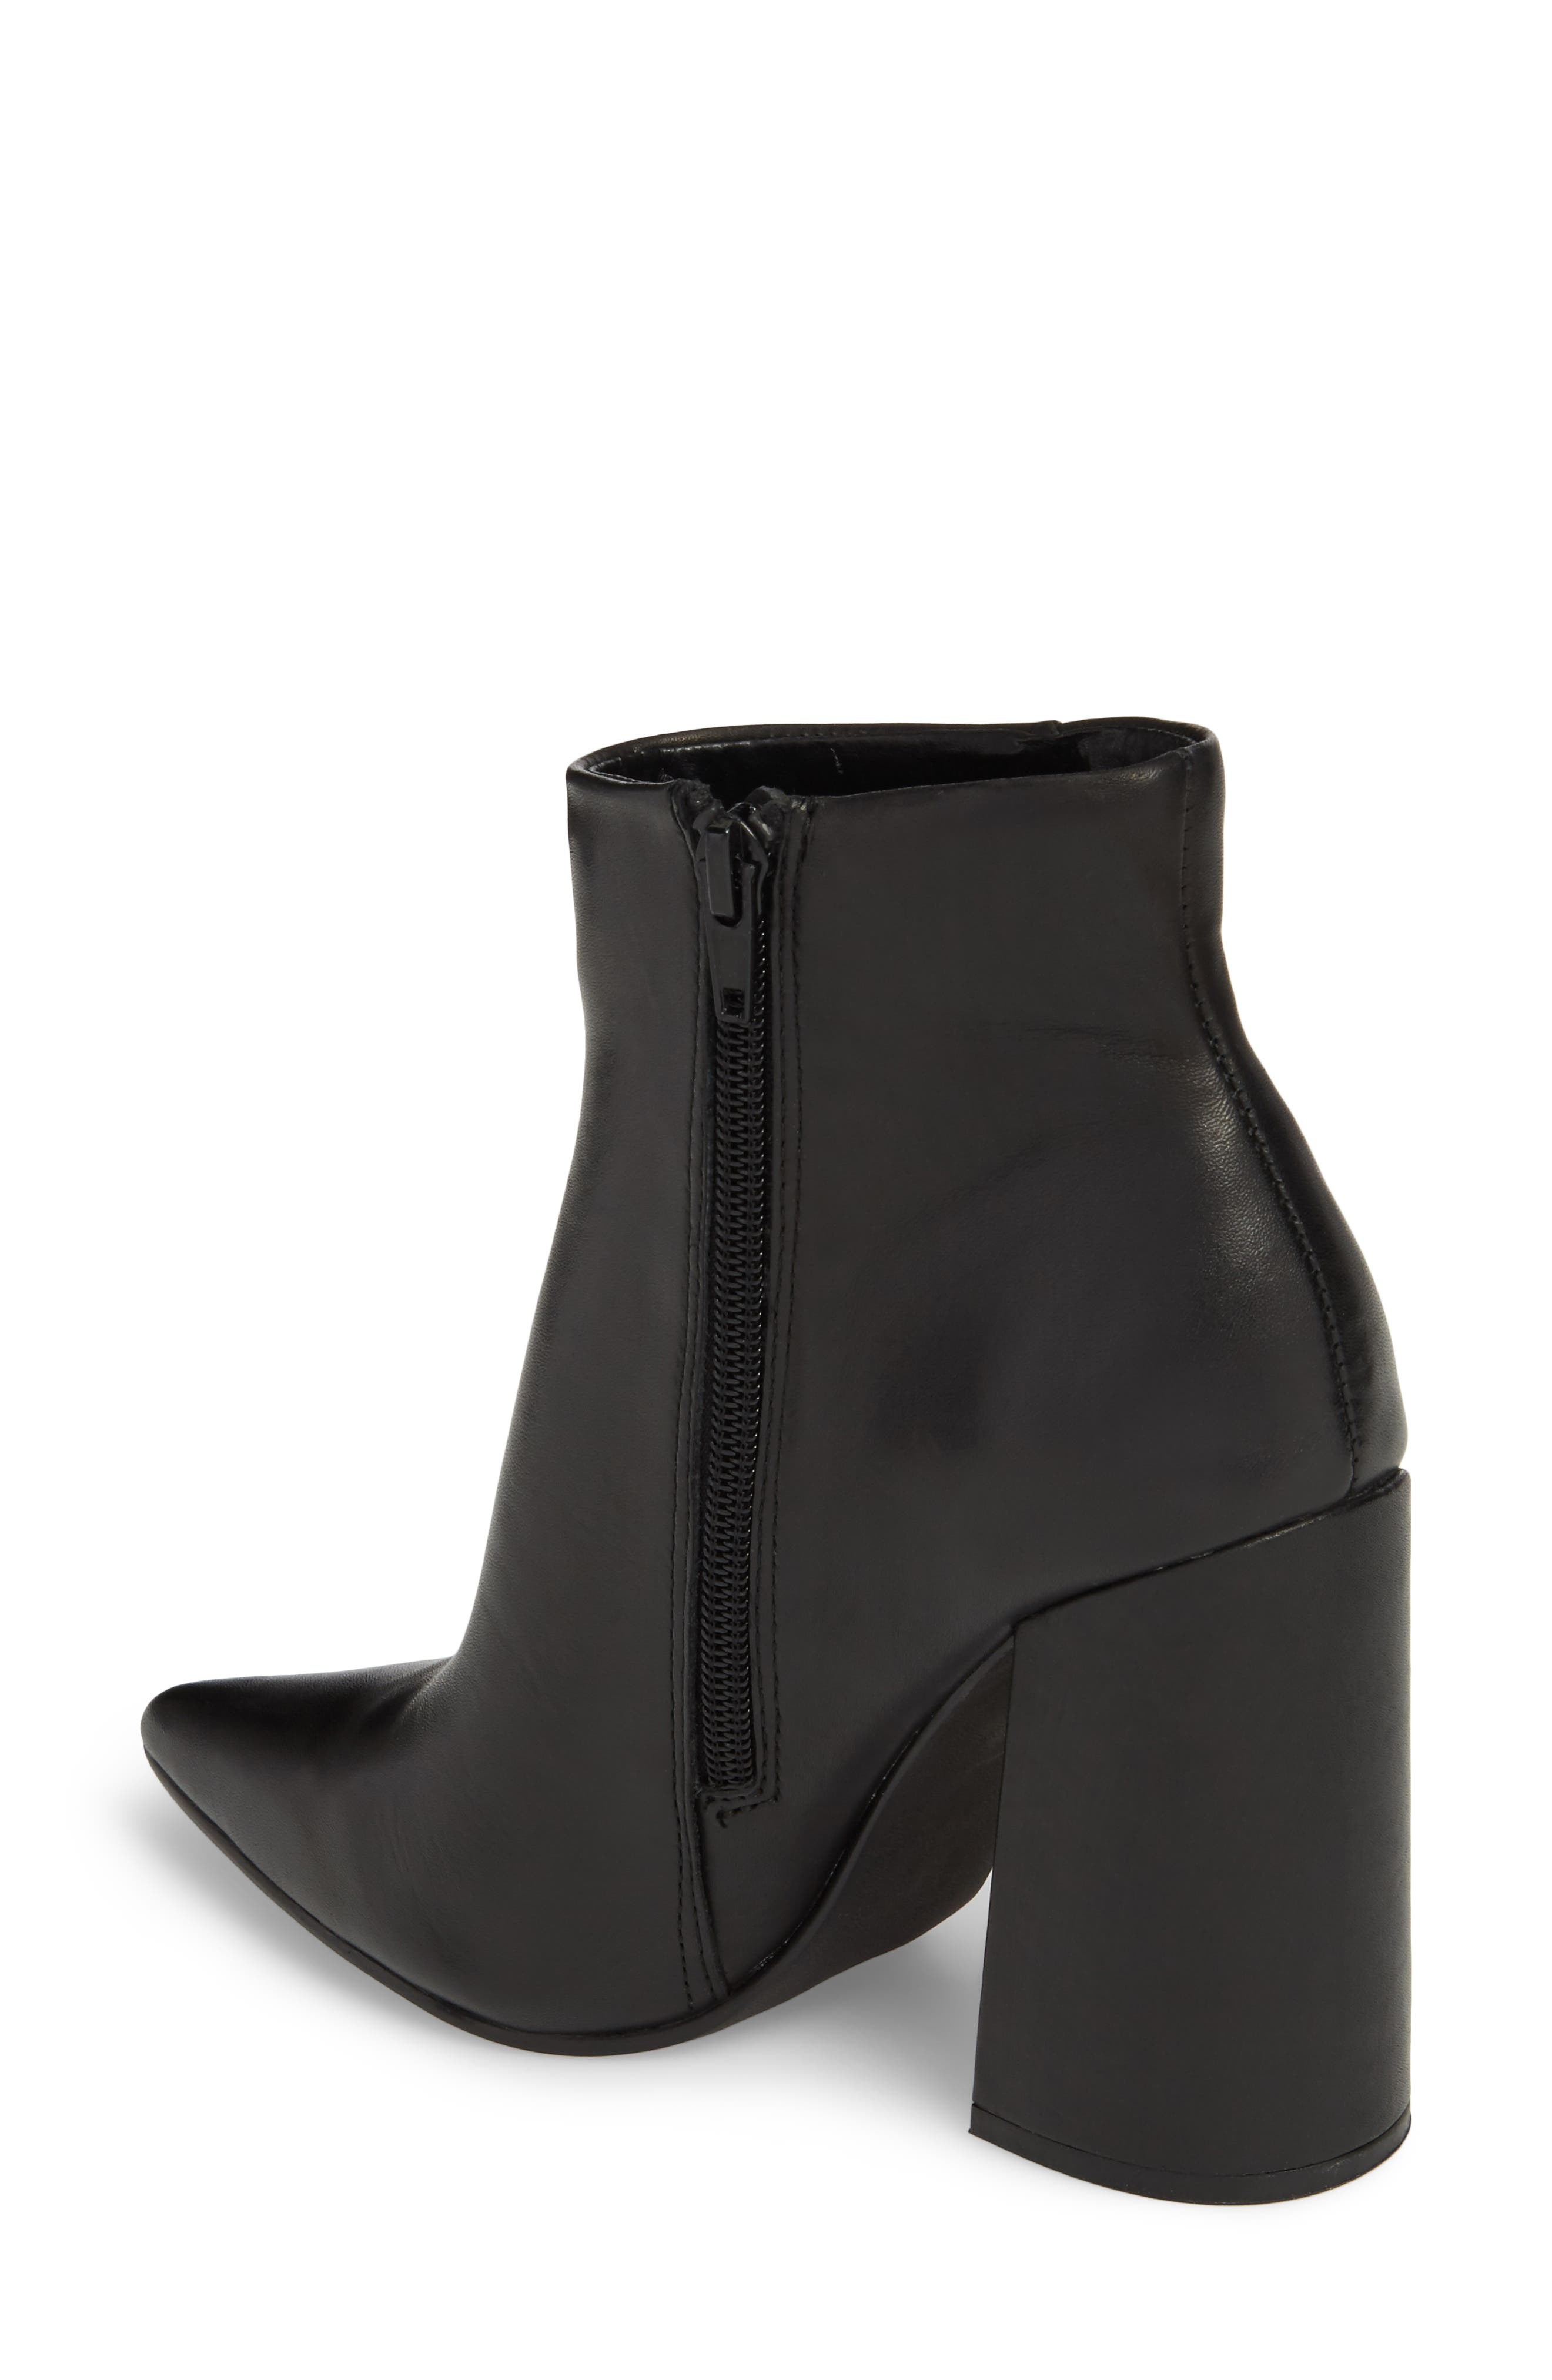 Justify Flared Heel Bootie,                             Alternate thumbnail 3, color,